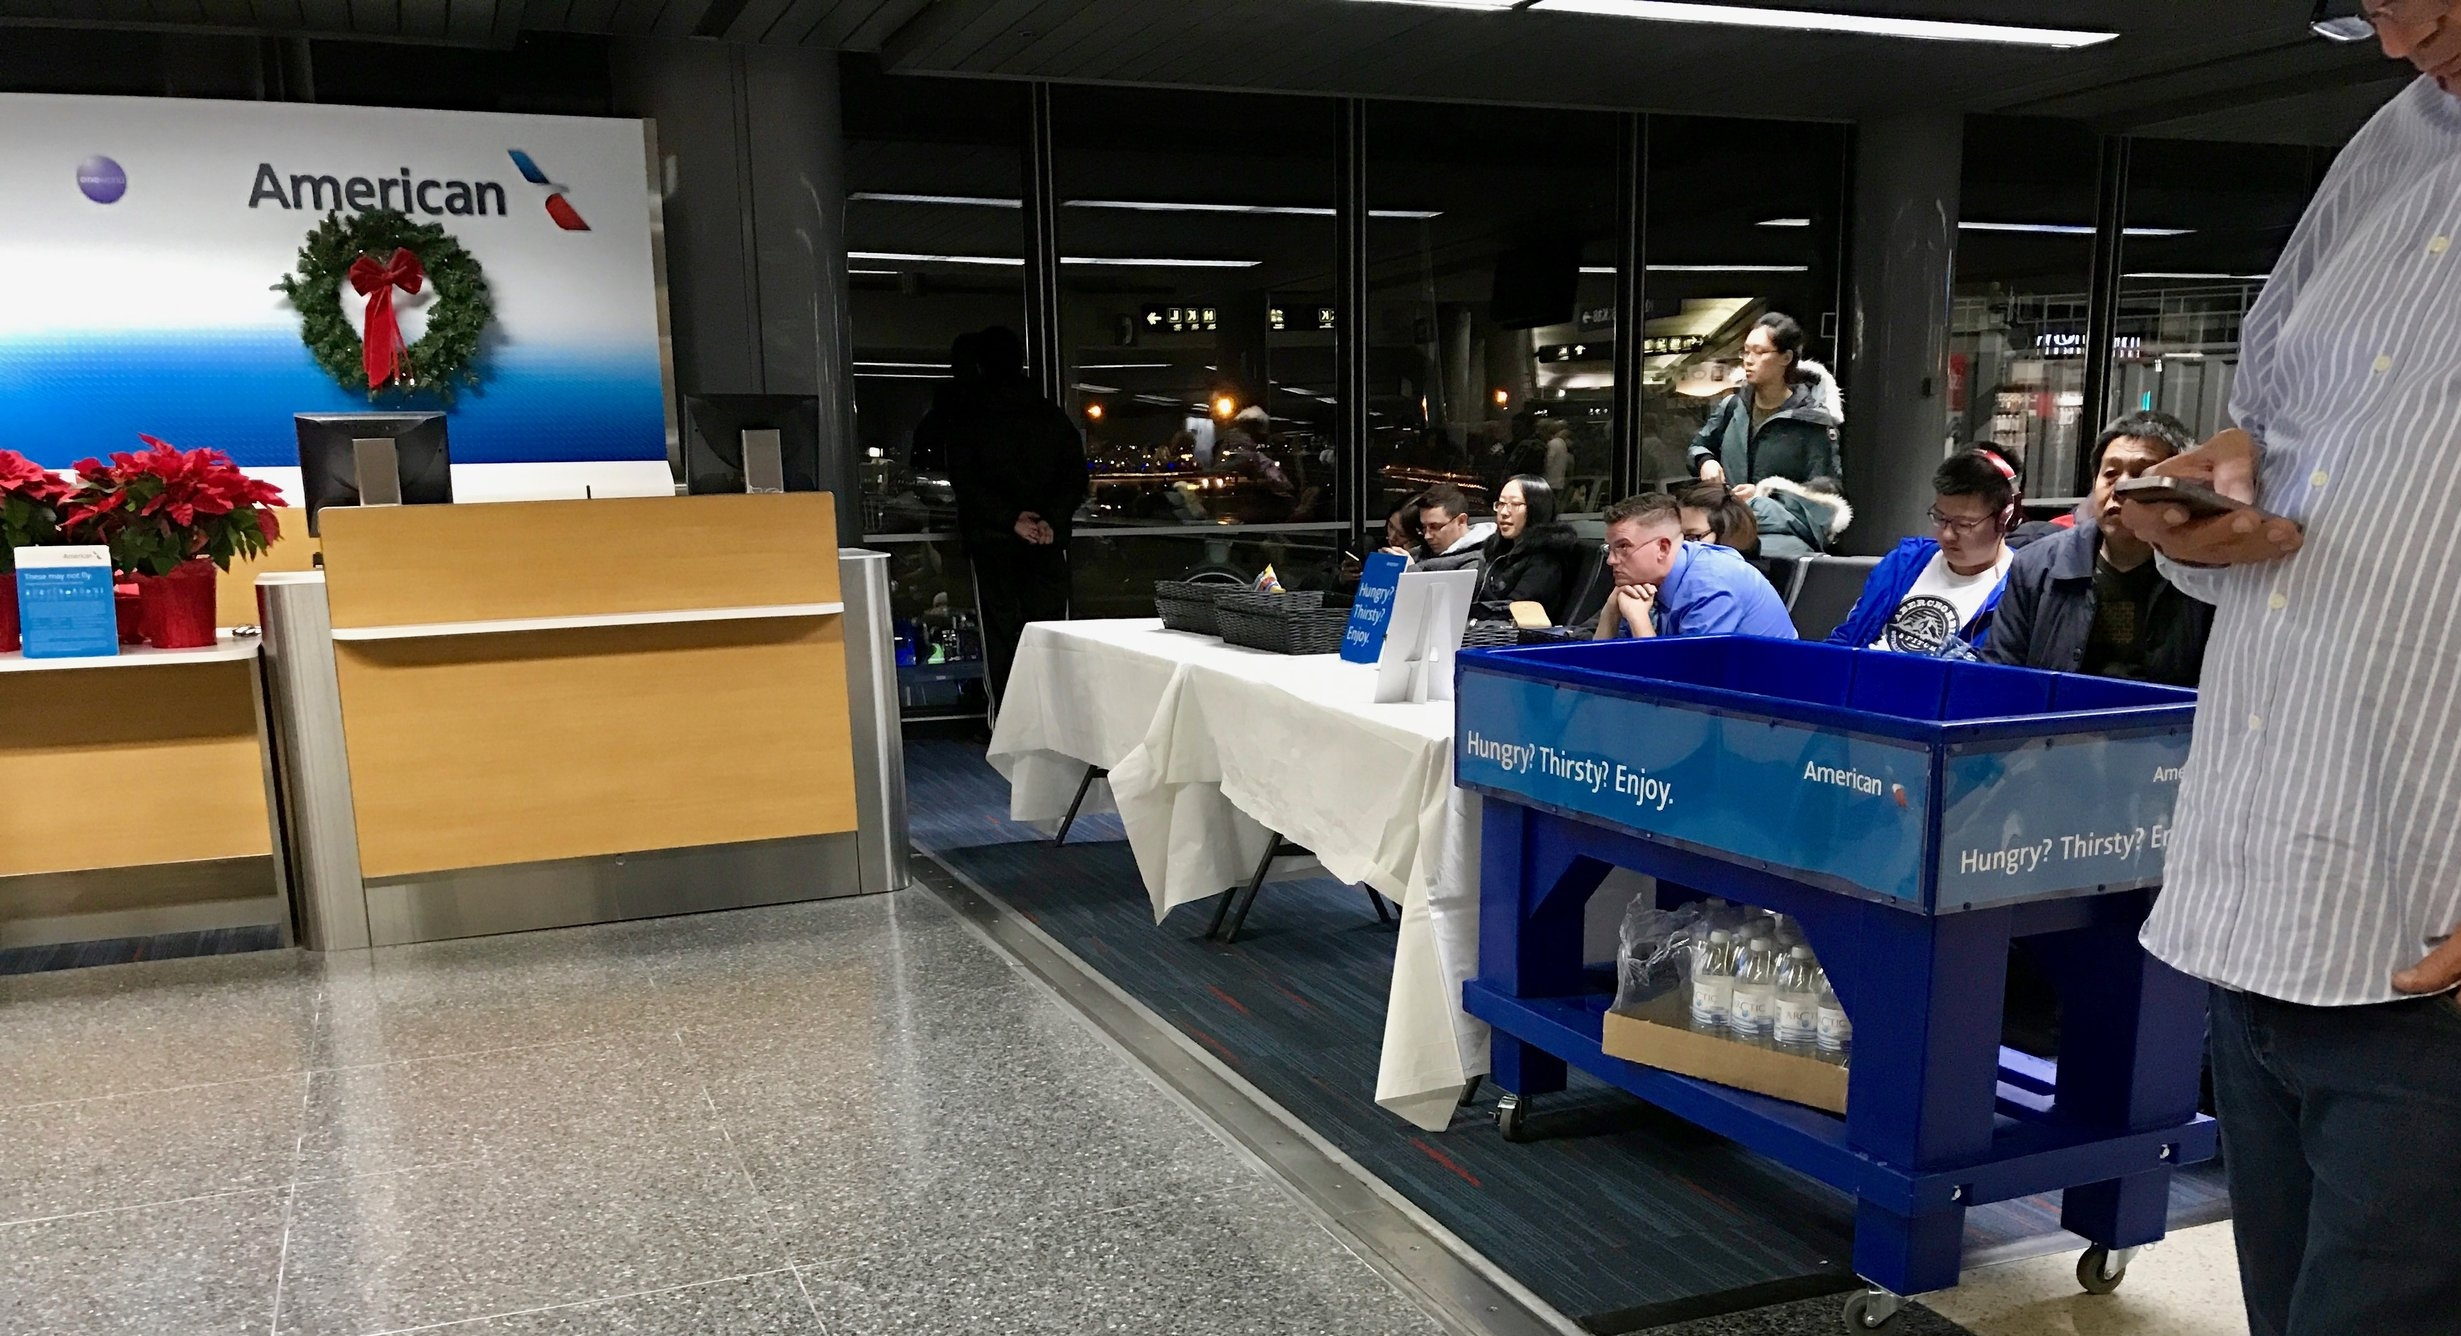 American Airlines ORD delay amenities at the gate